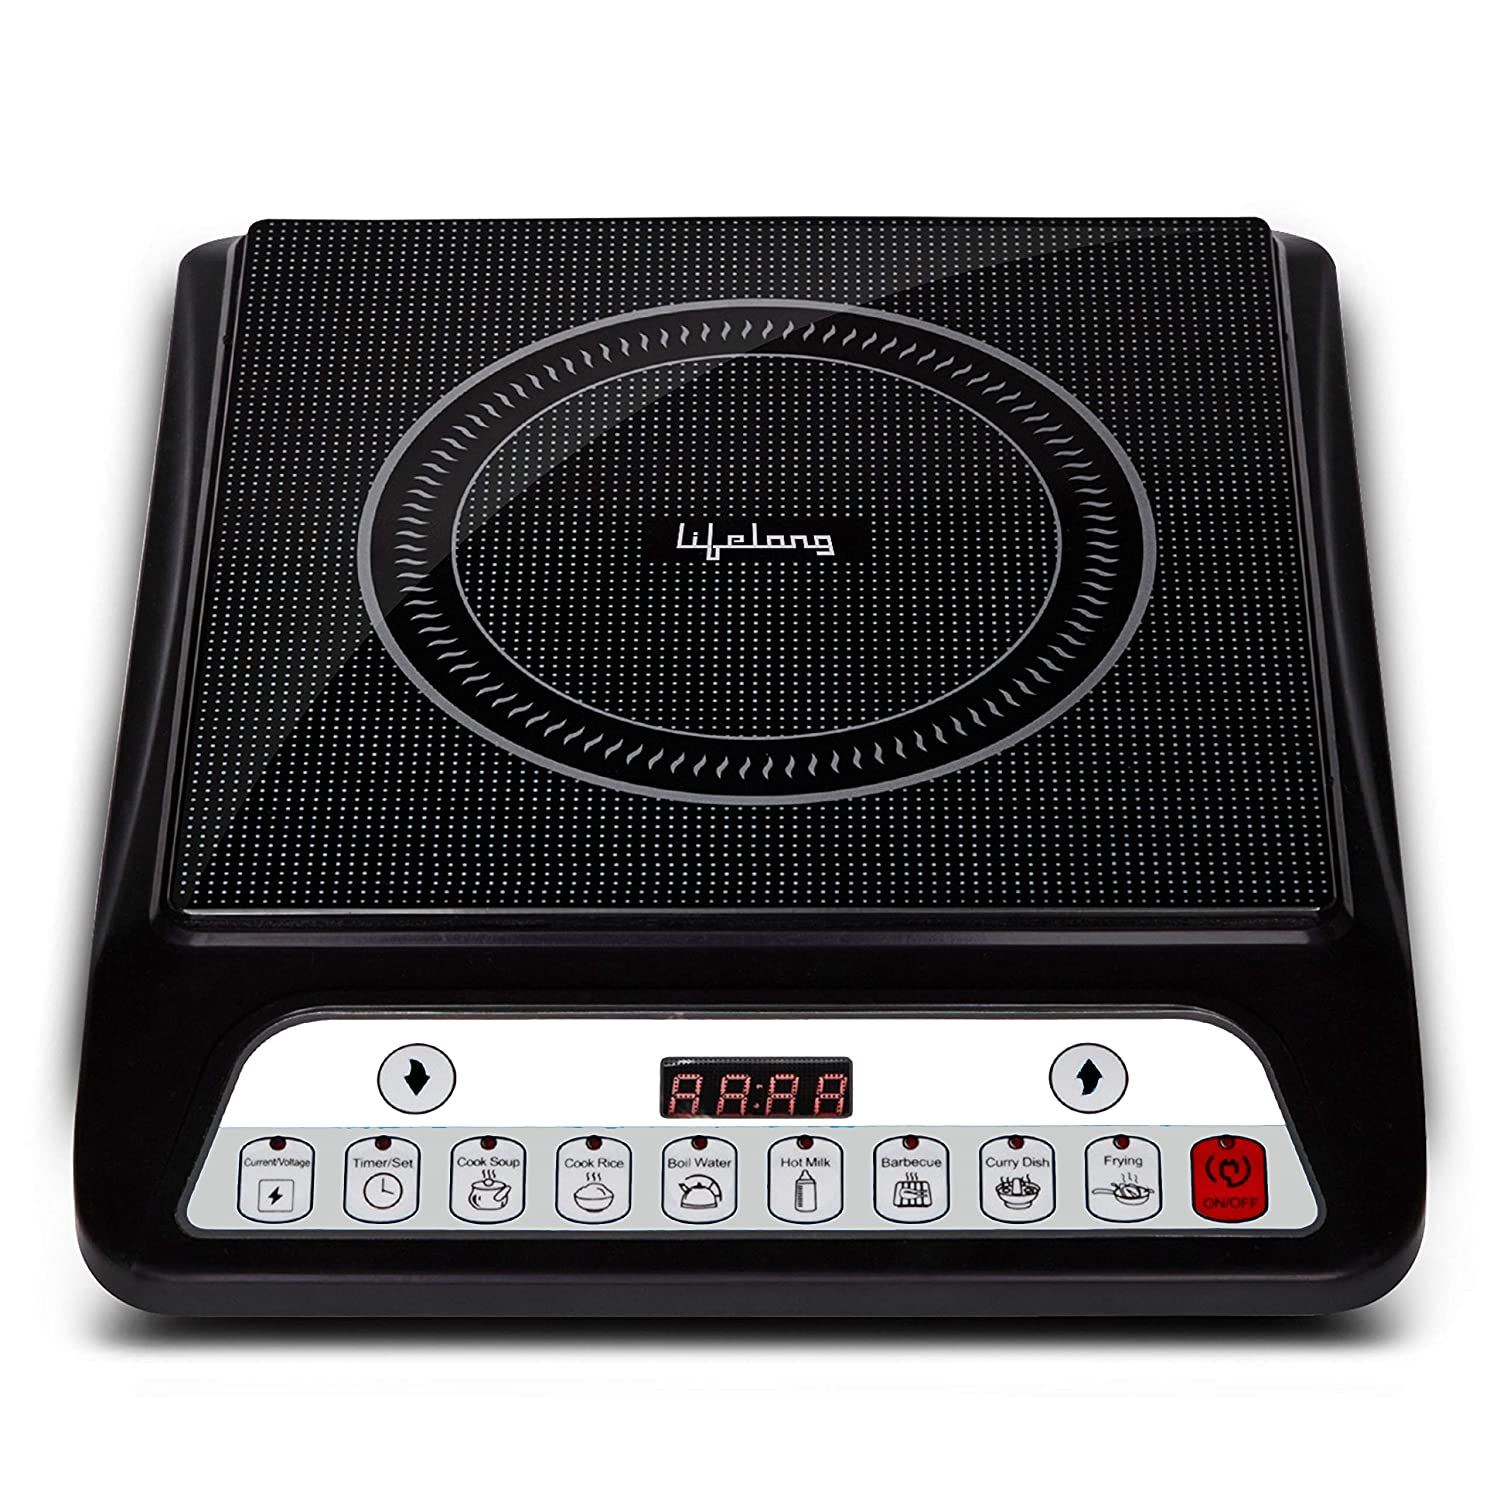 Lifelong Inferno LLIC30 2000 Watt Induction Cooktop